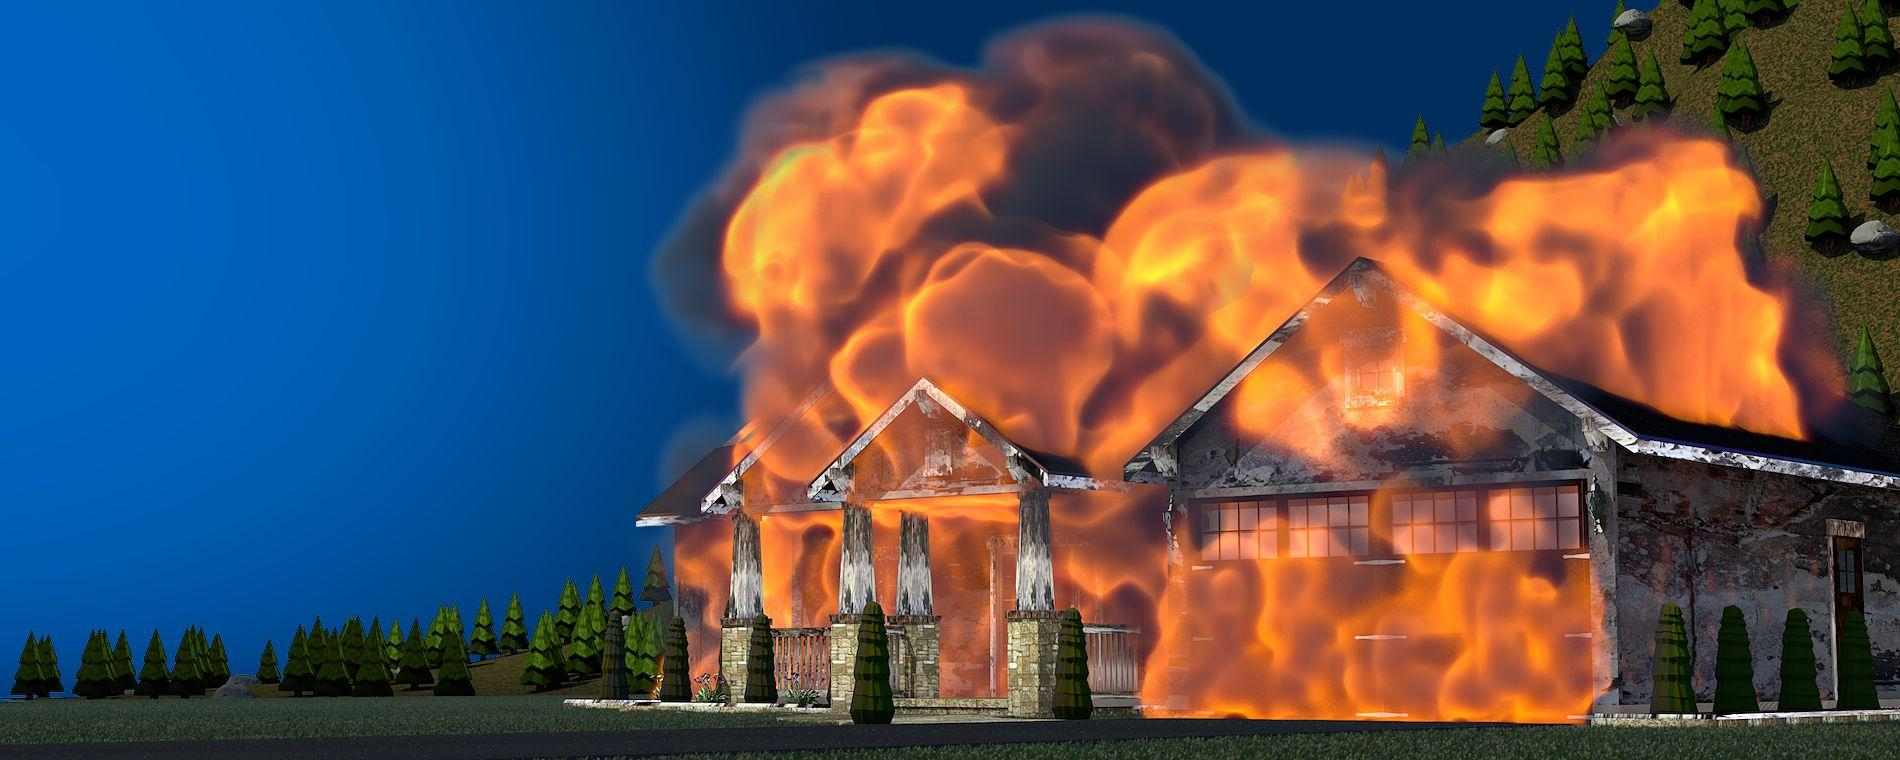 Graphic illustration of a house on fire